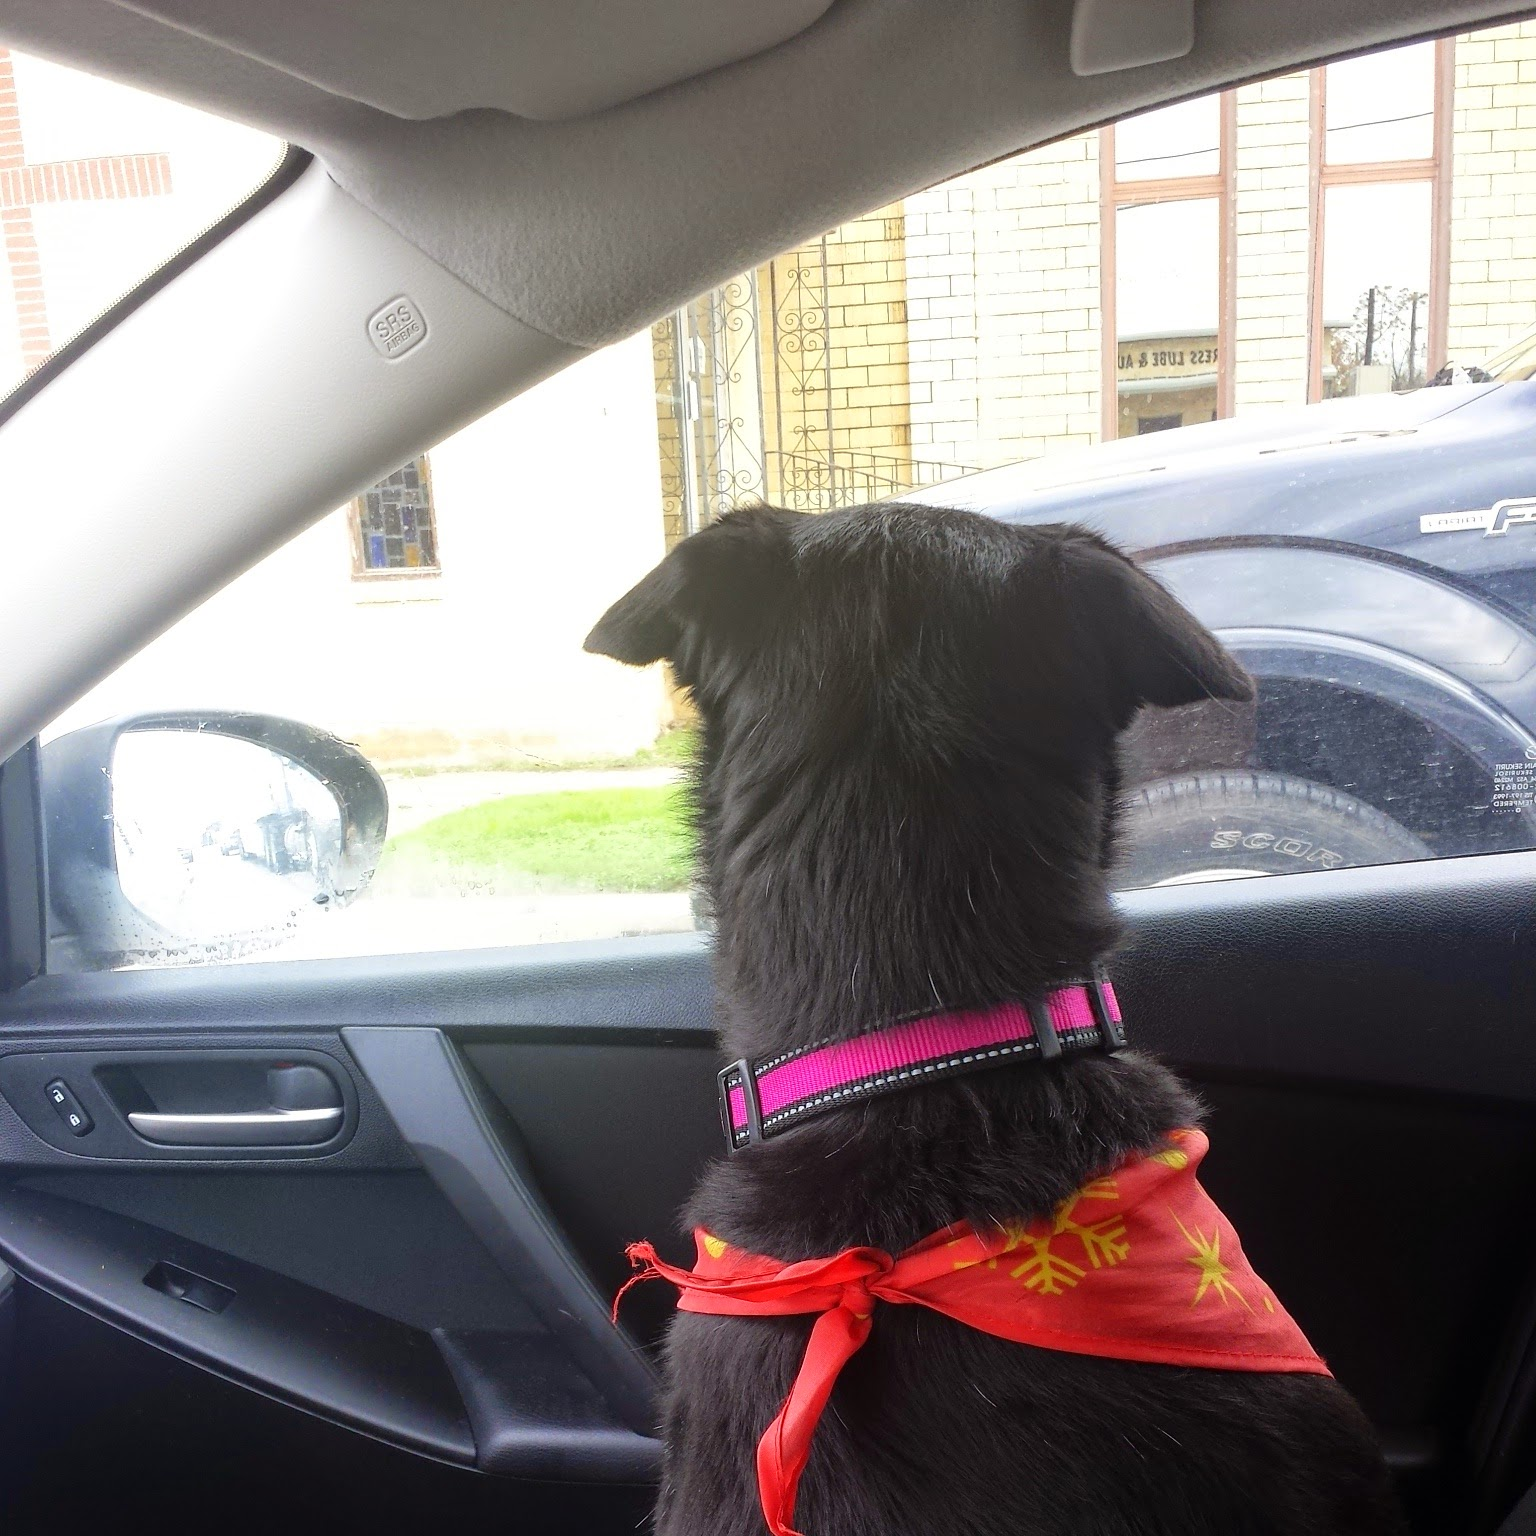 She is on the look out for adventure.